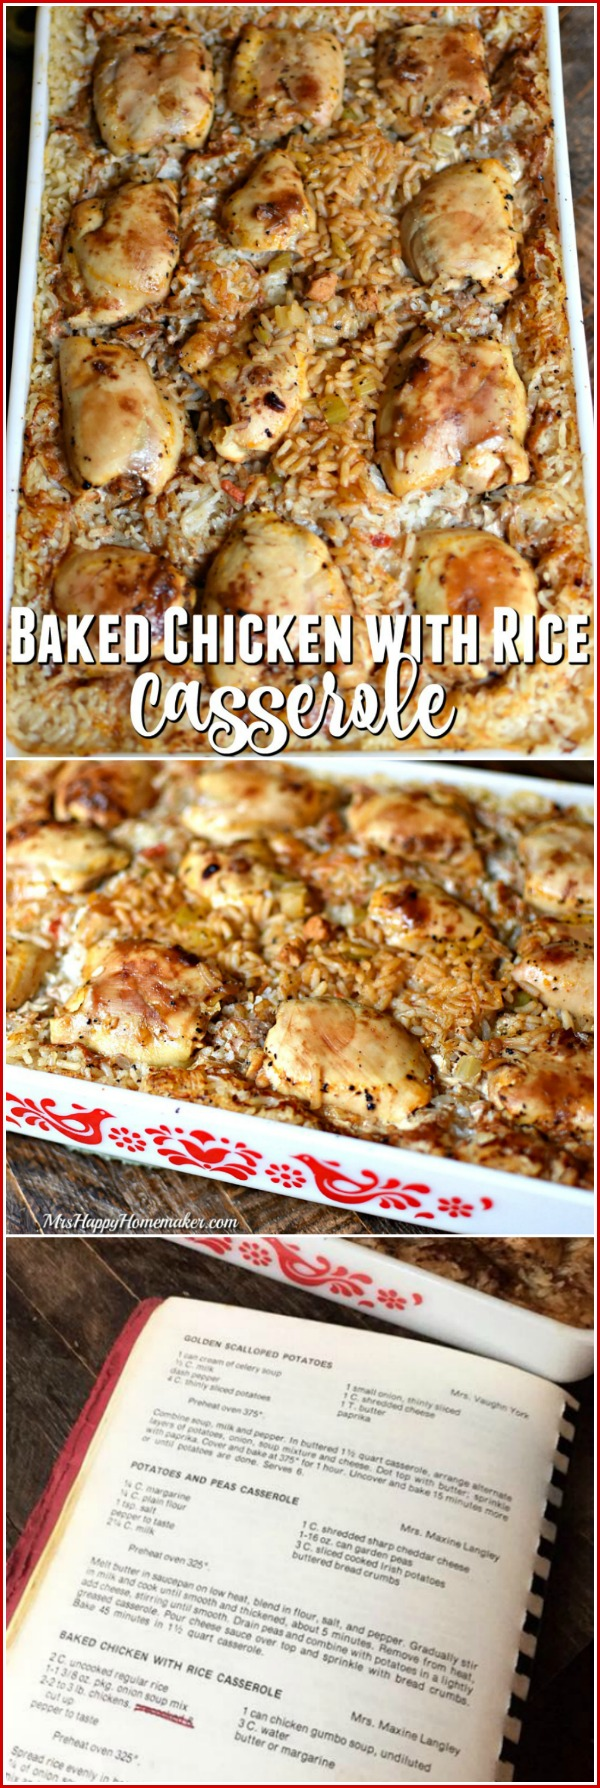 This Baked Chicken with Rice recipe came from an old church cookbook